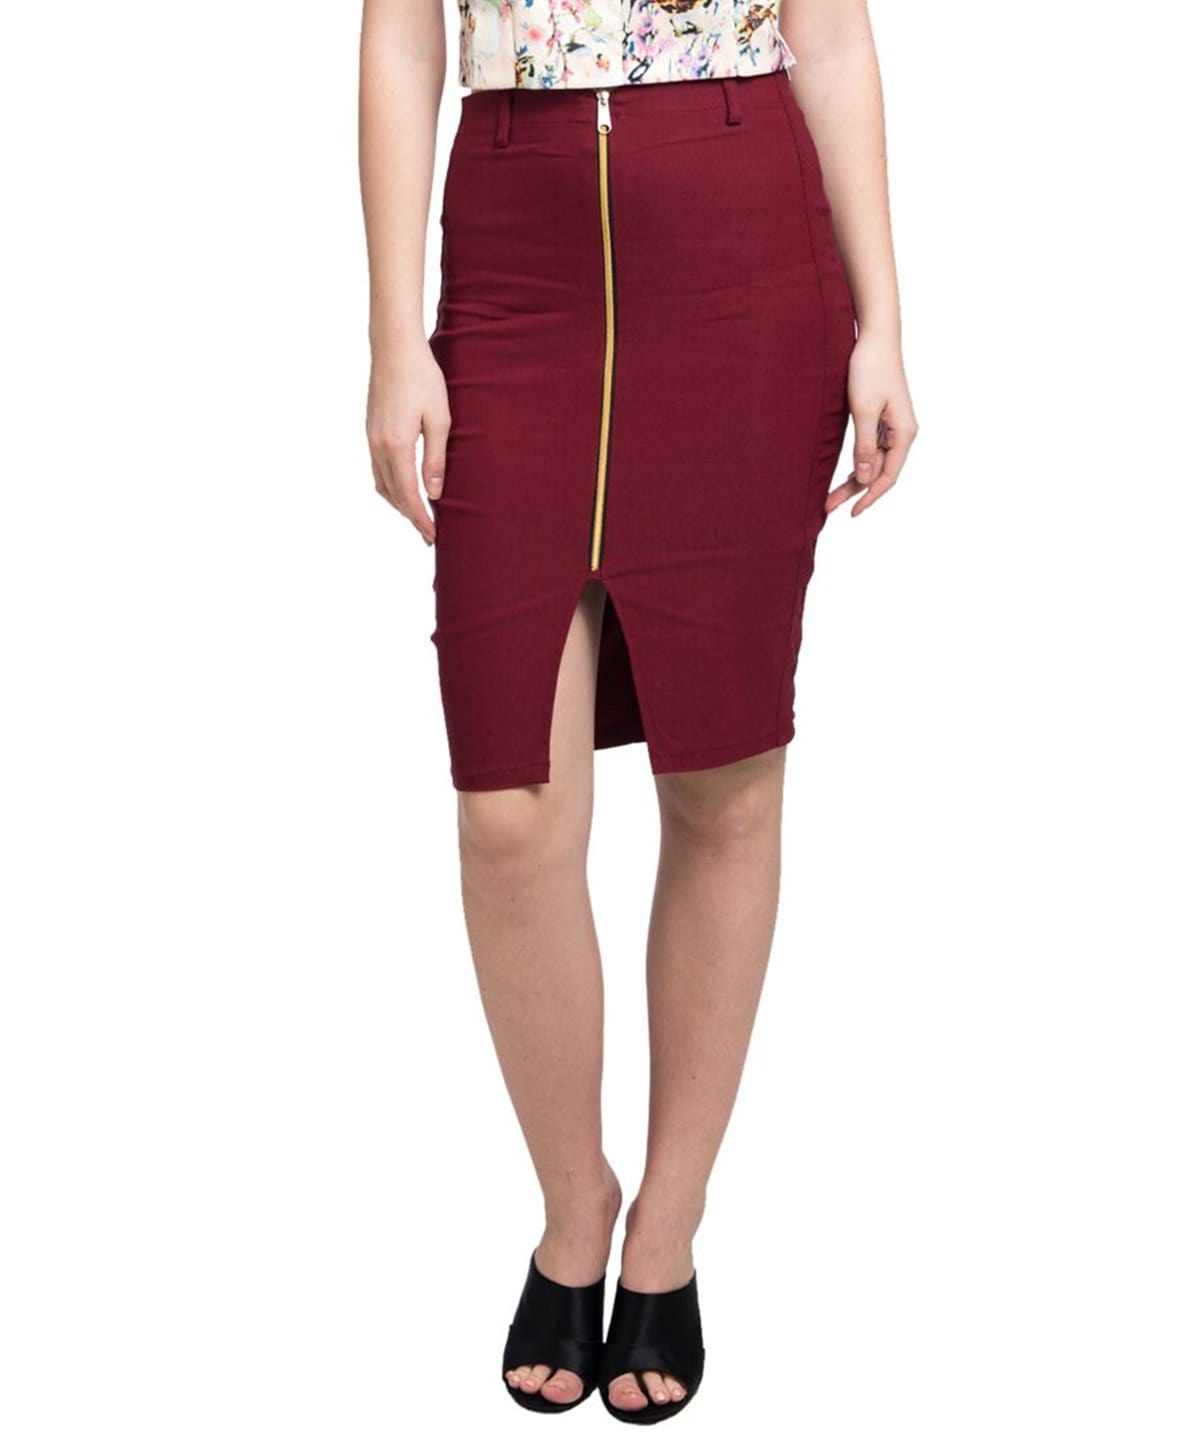 Maroon Zipper Style Pencil Skirt - Uptownie